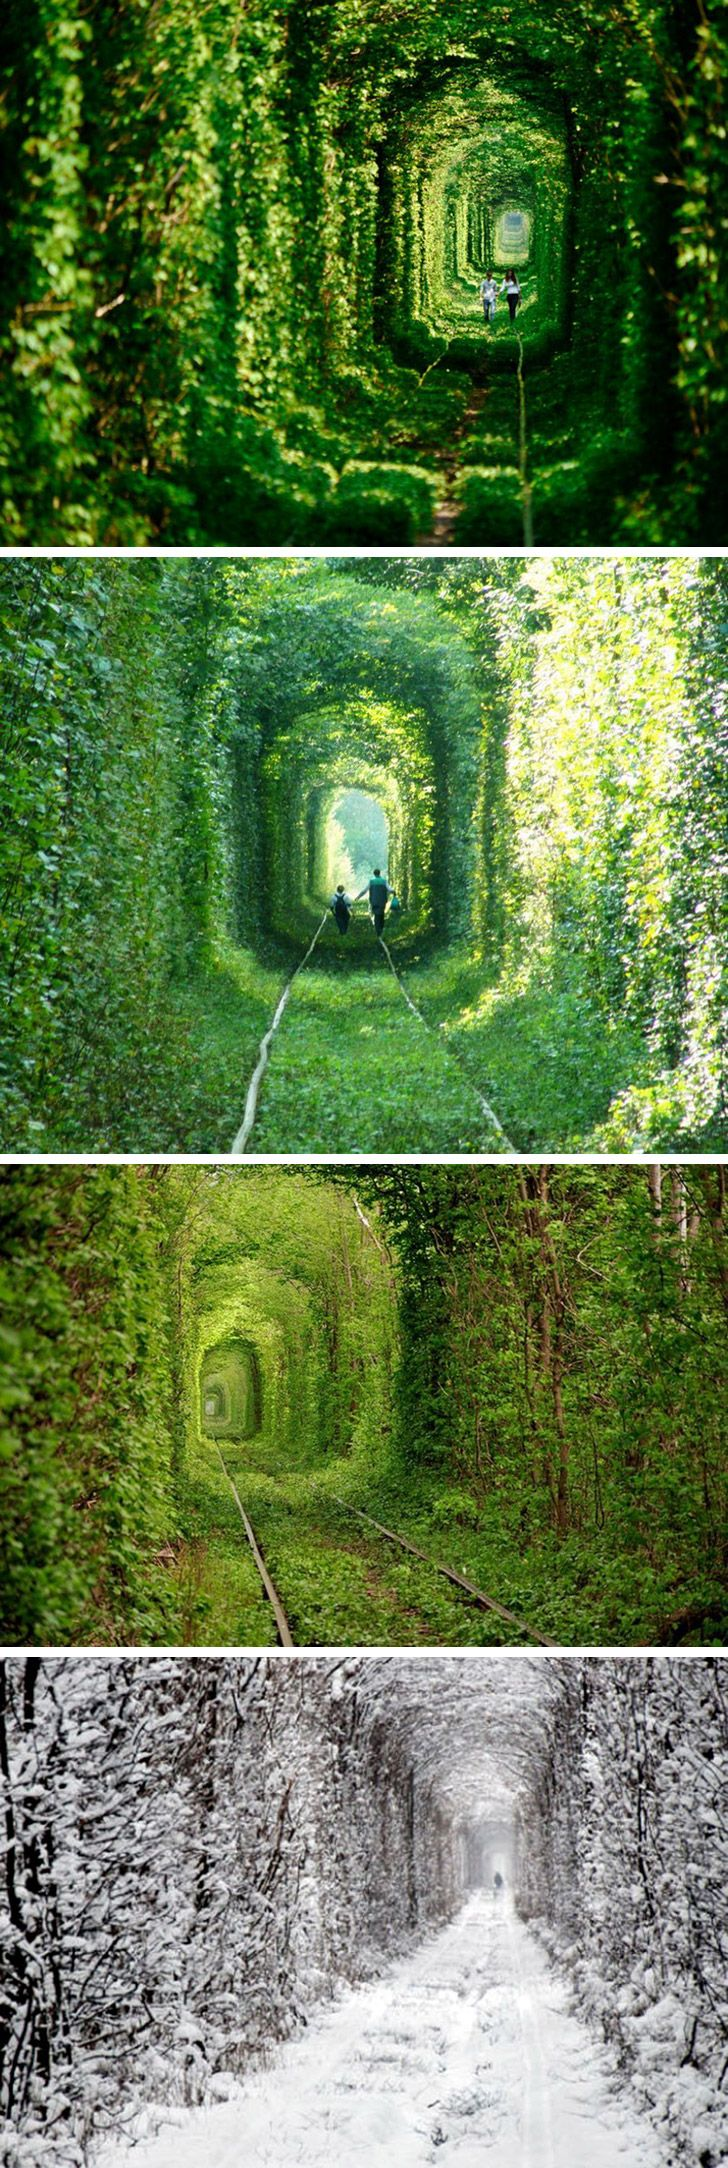 The Tunnel of Love in Kleven, Ukraine.